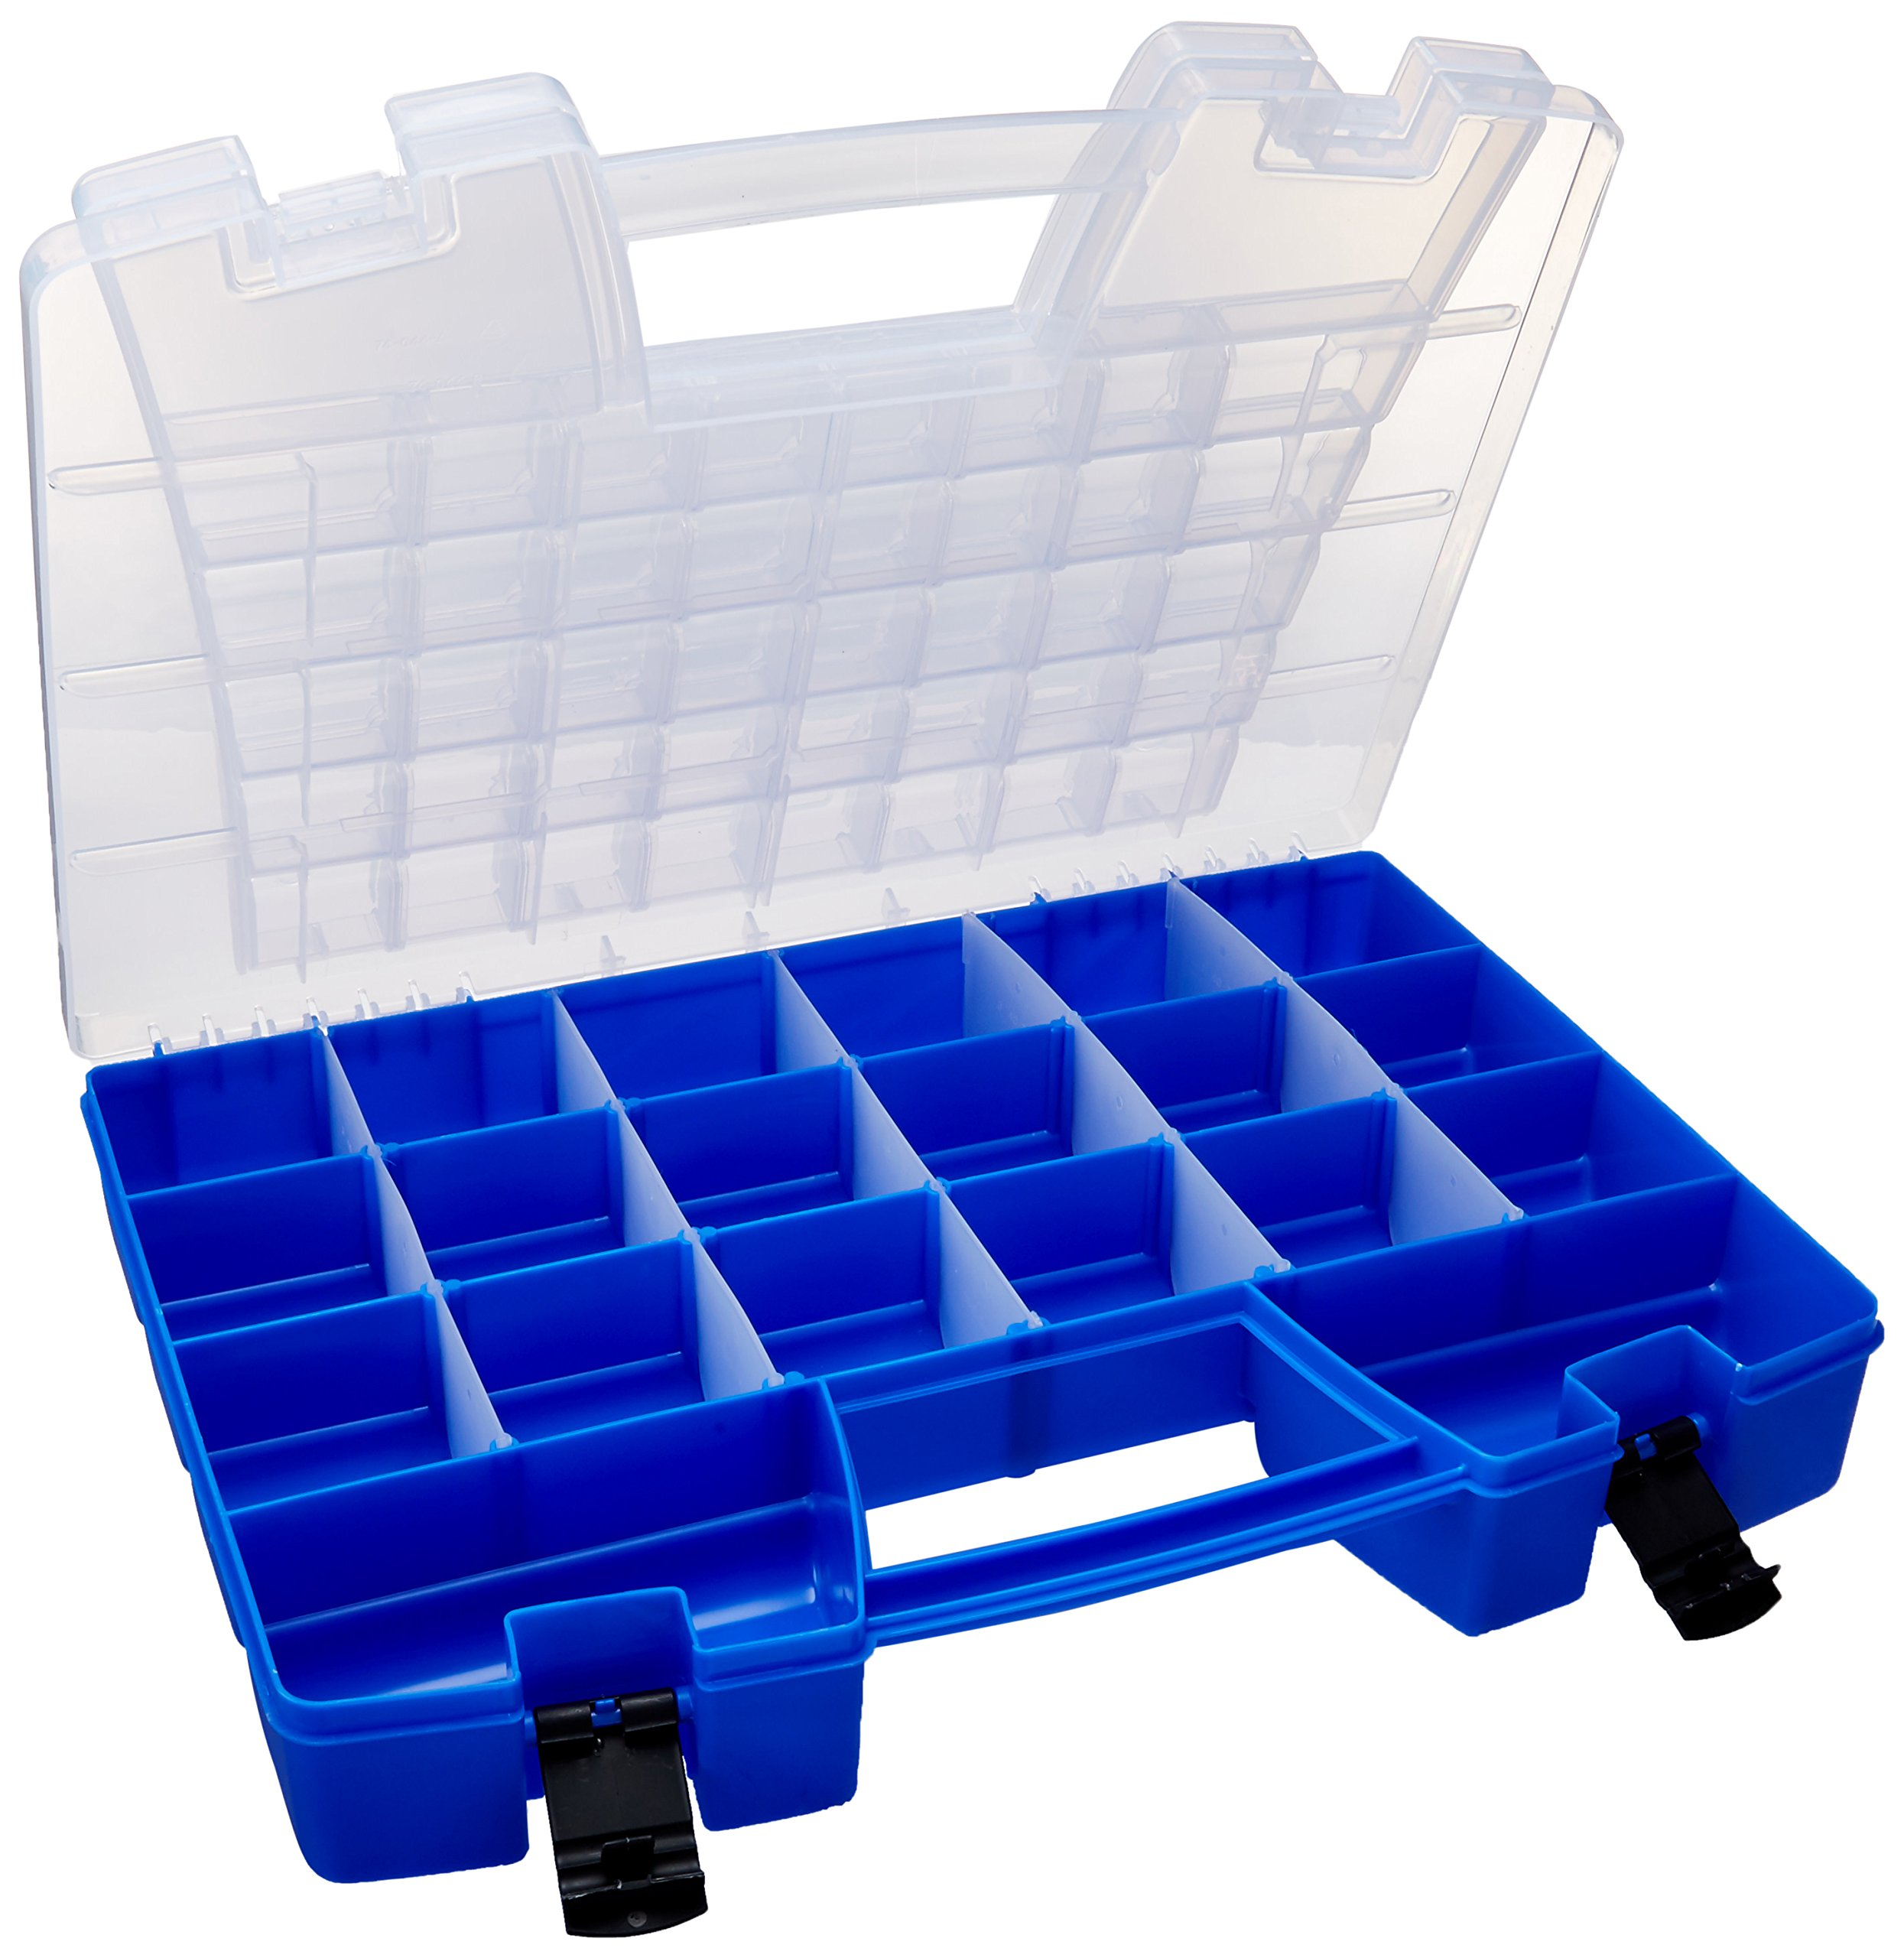 Akro-Mils 06118 Plastic Portable Hardware and Craft Parts Organizer, Large, Blue by Akro-Mils